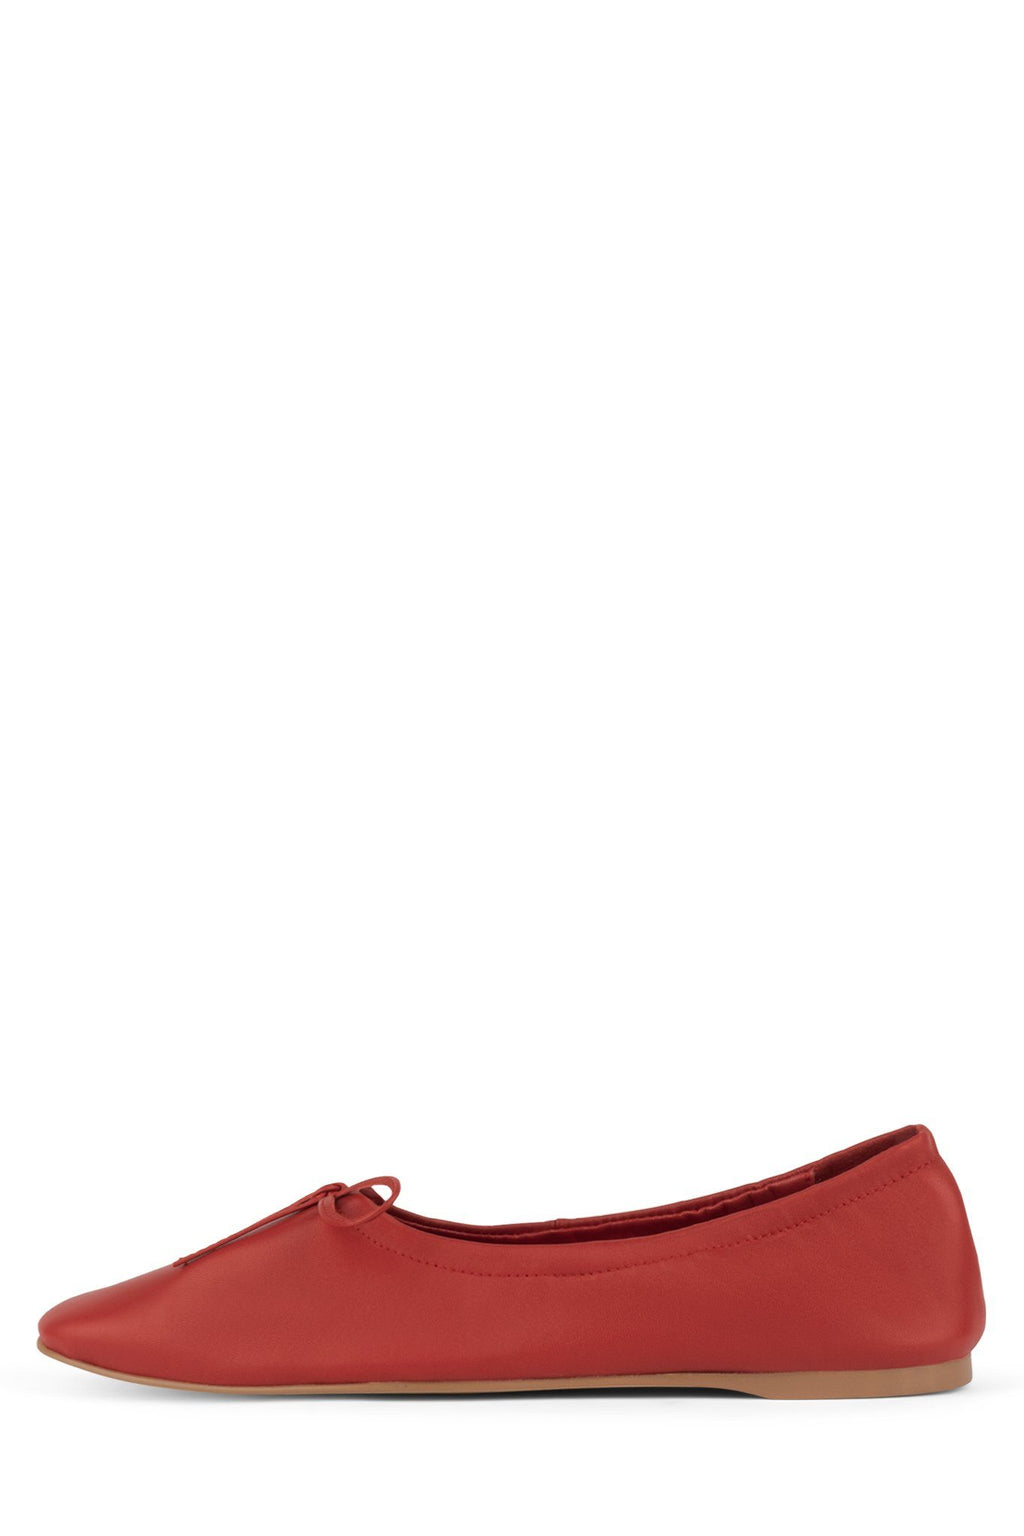 BALLERINE Flat Jeffrey Campbell Red 6